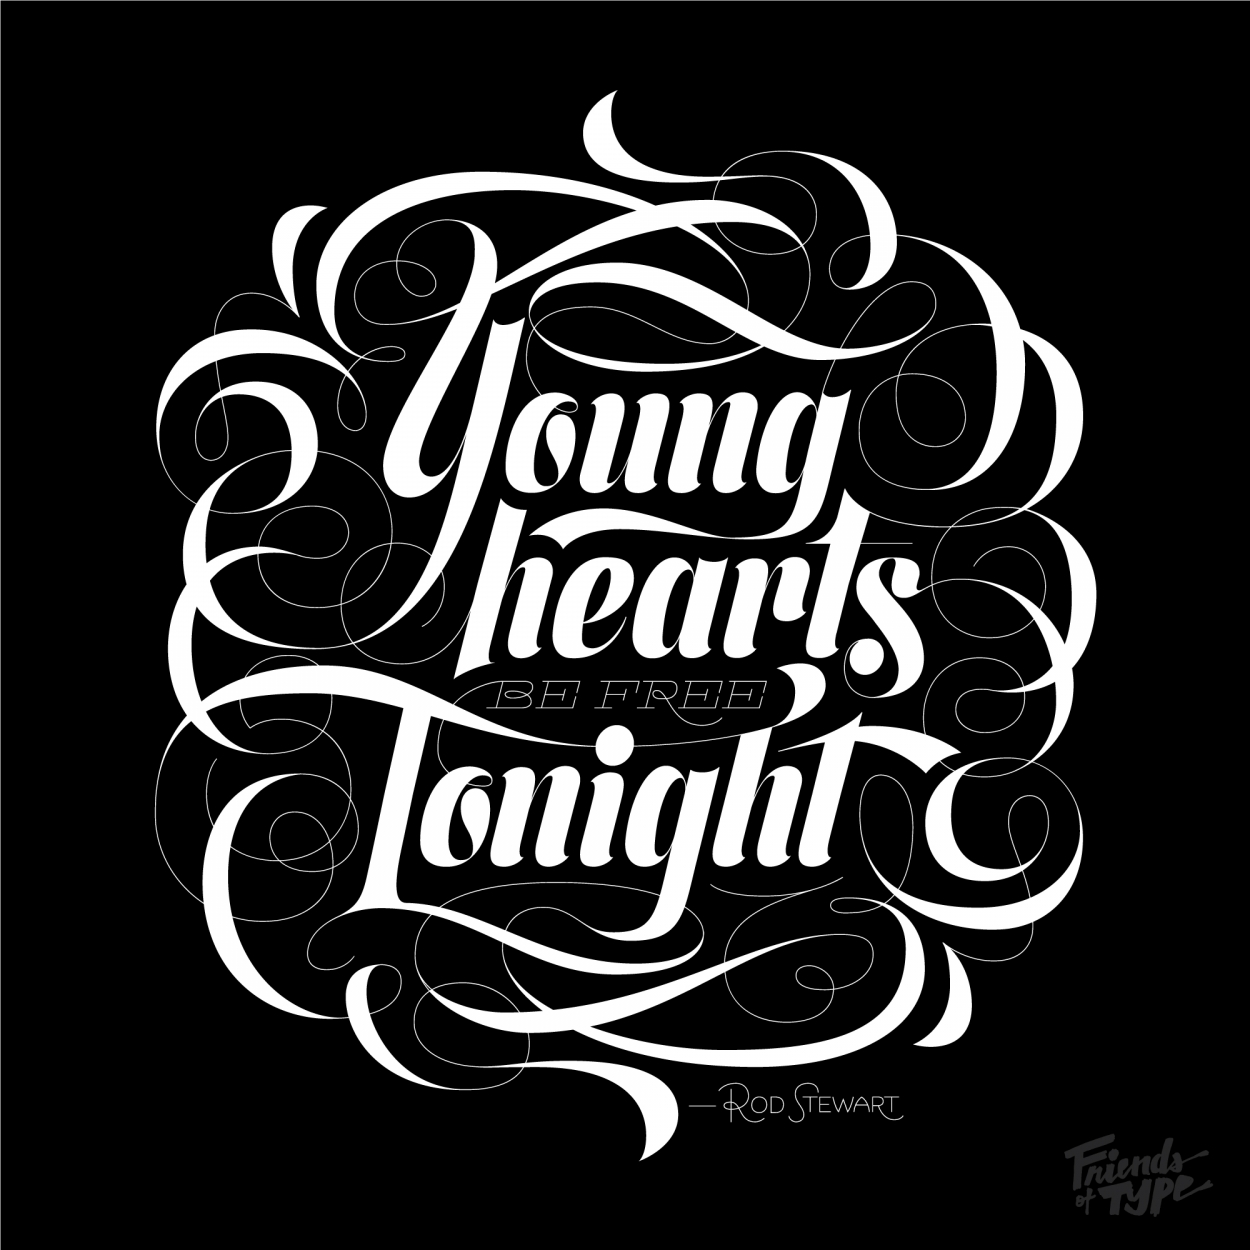 Erik Marinovich - Friends of Type - Young Hearts Be Free Tonight